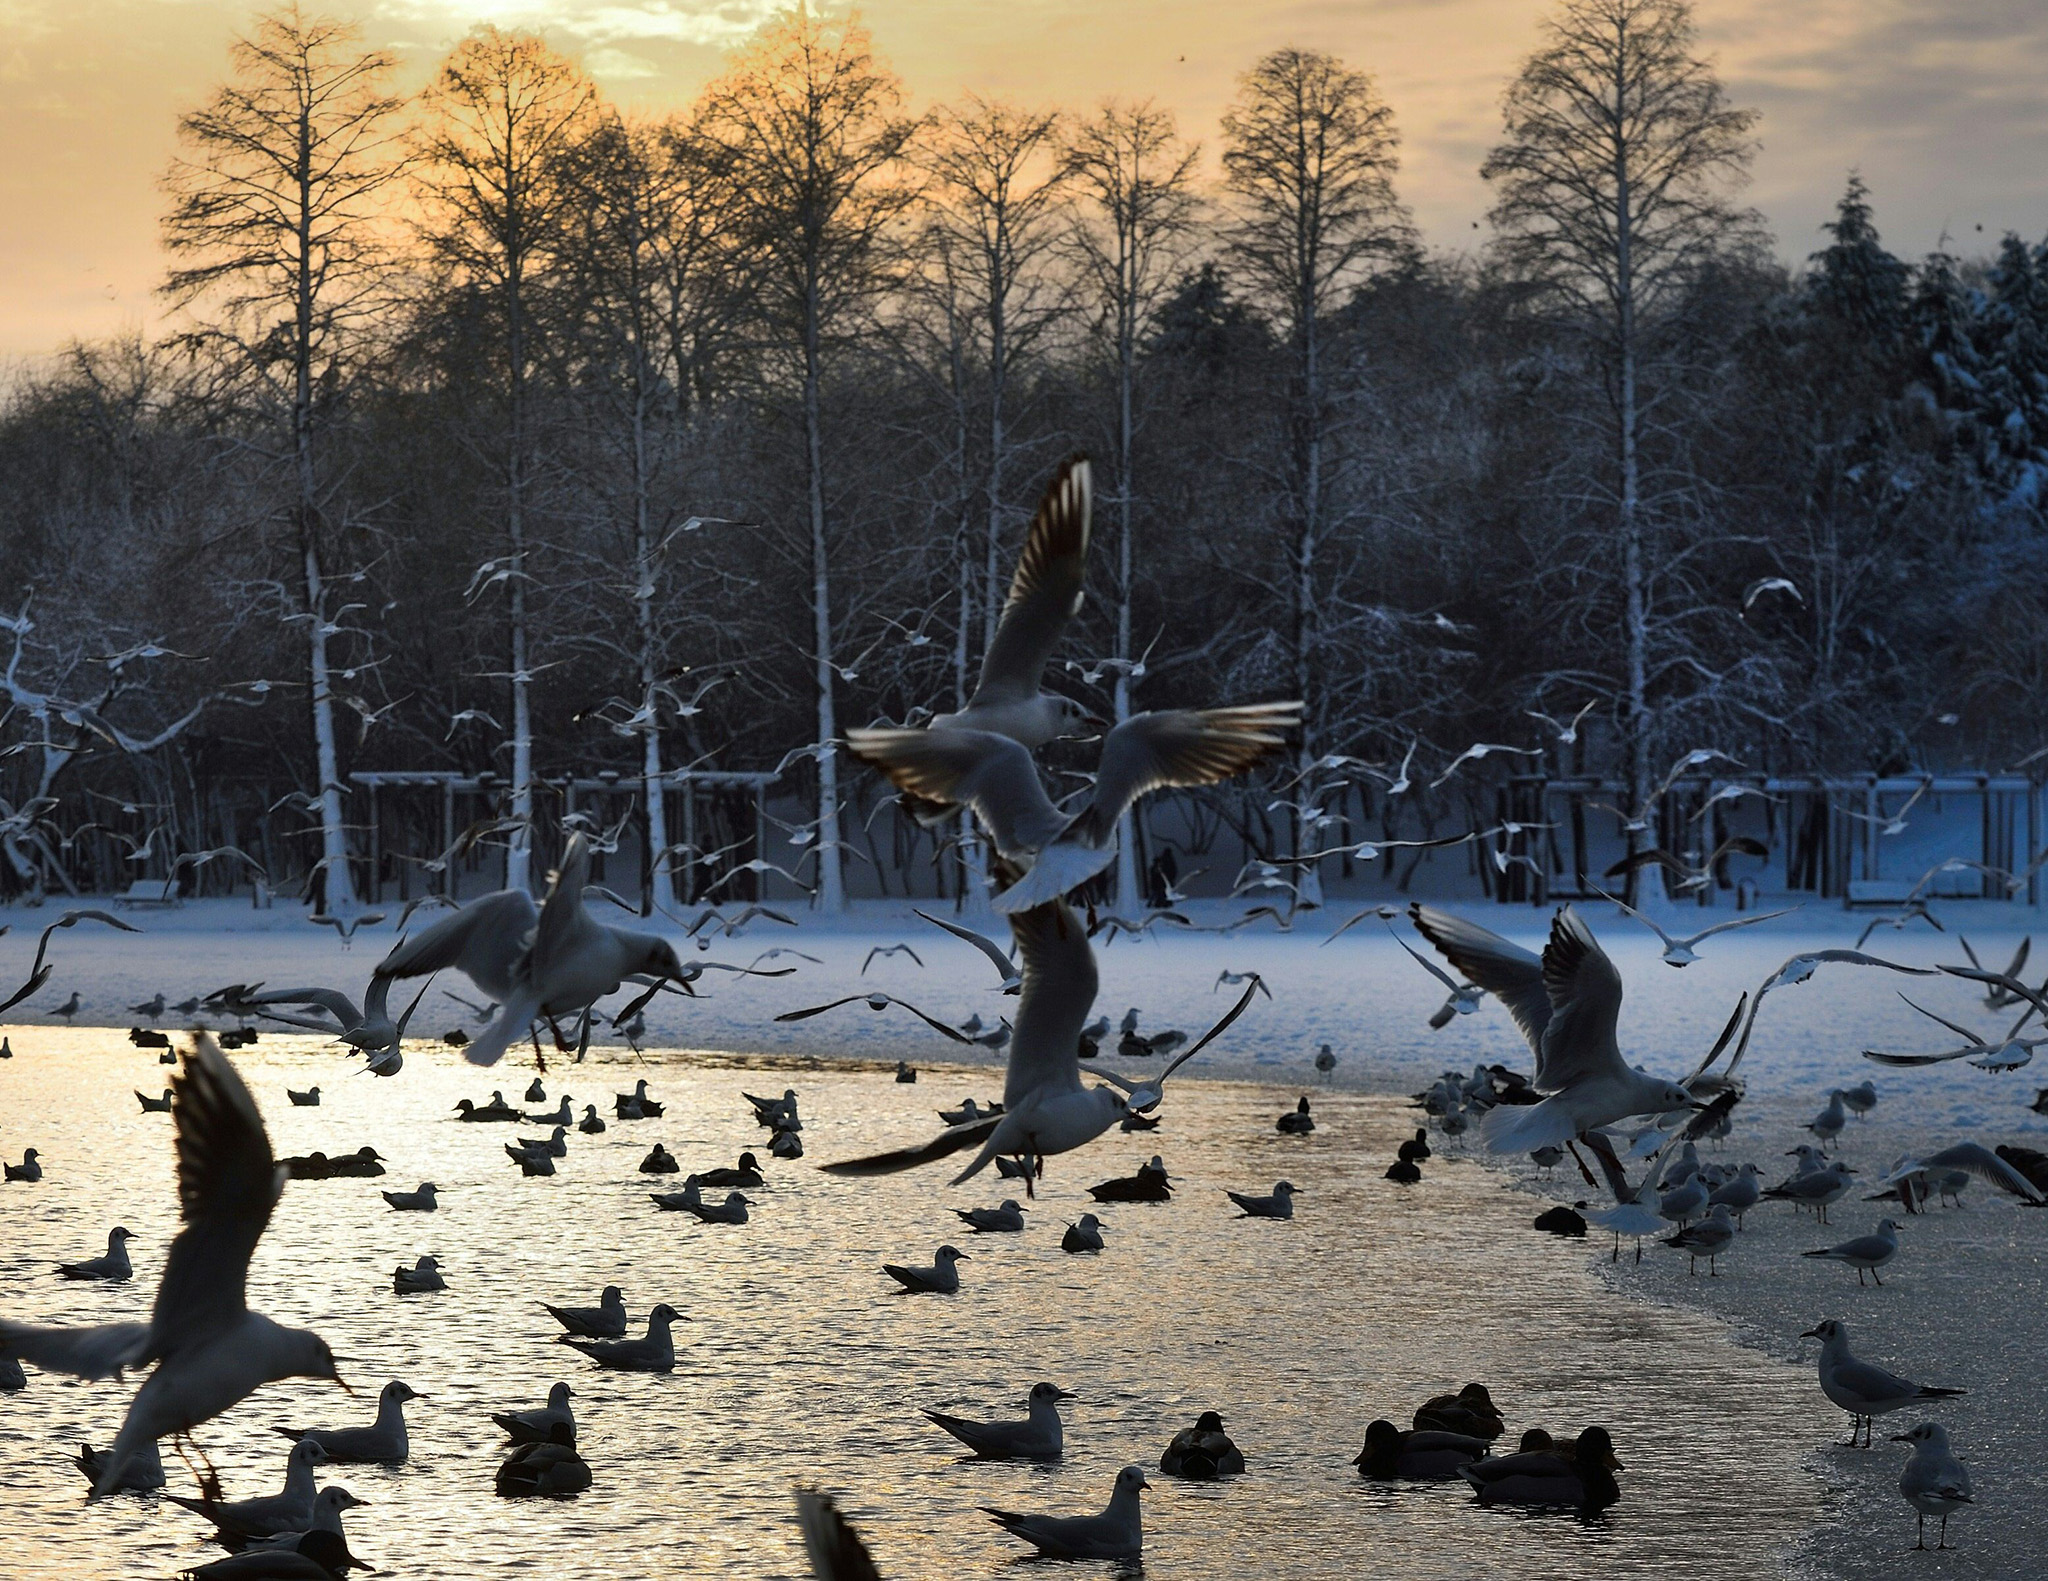 Water birds fly over a partially frozen lake in a park in Bucharest, Romania